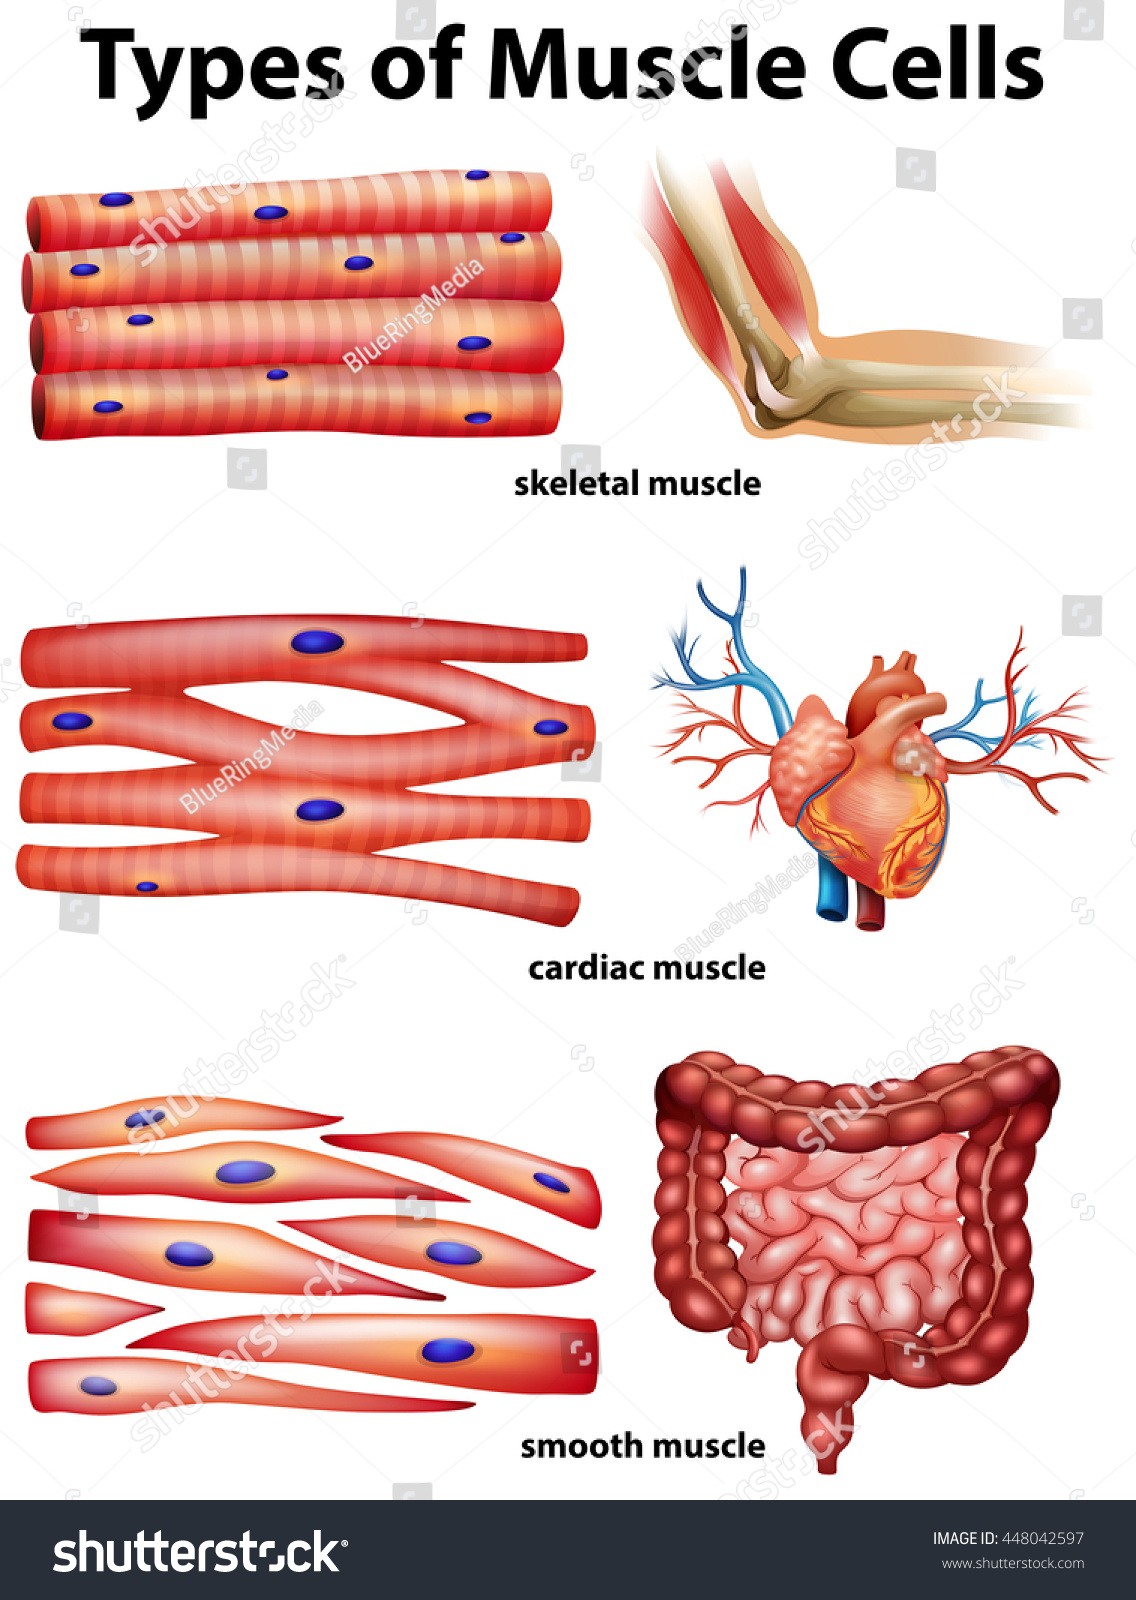 diagram showing types muscle cells illustration stock vector